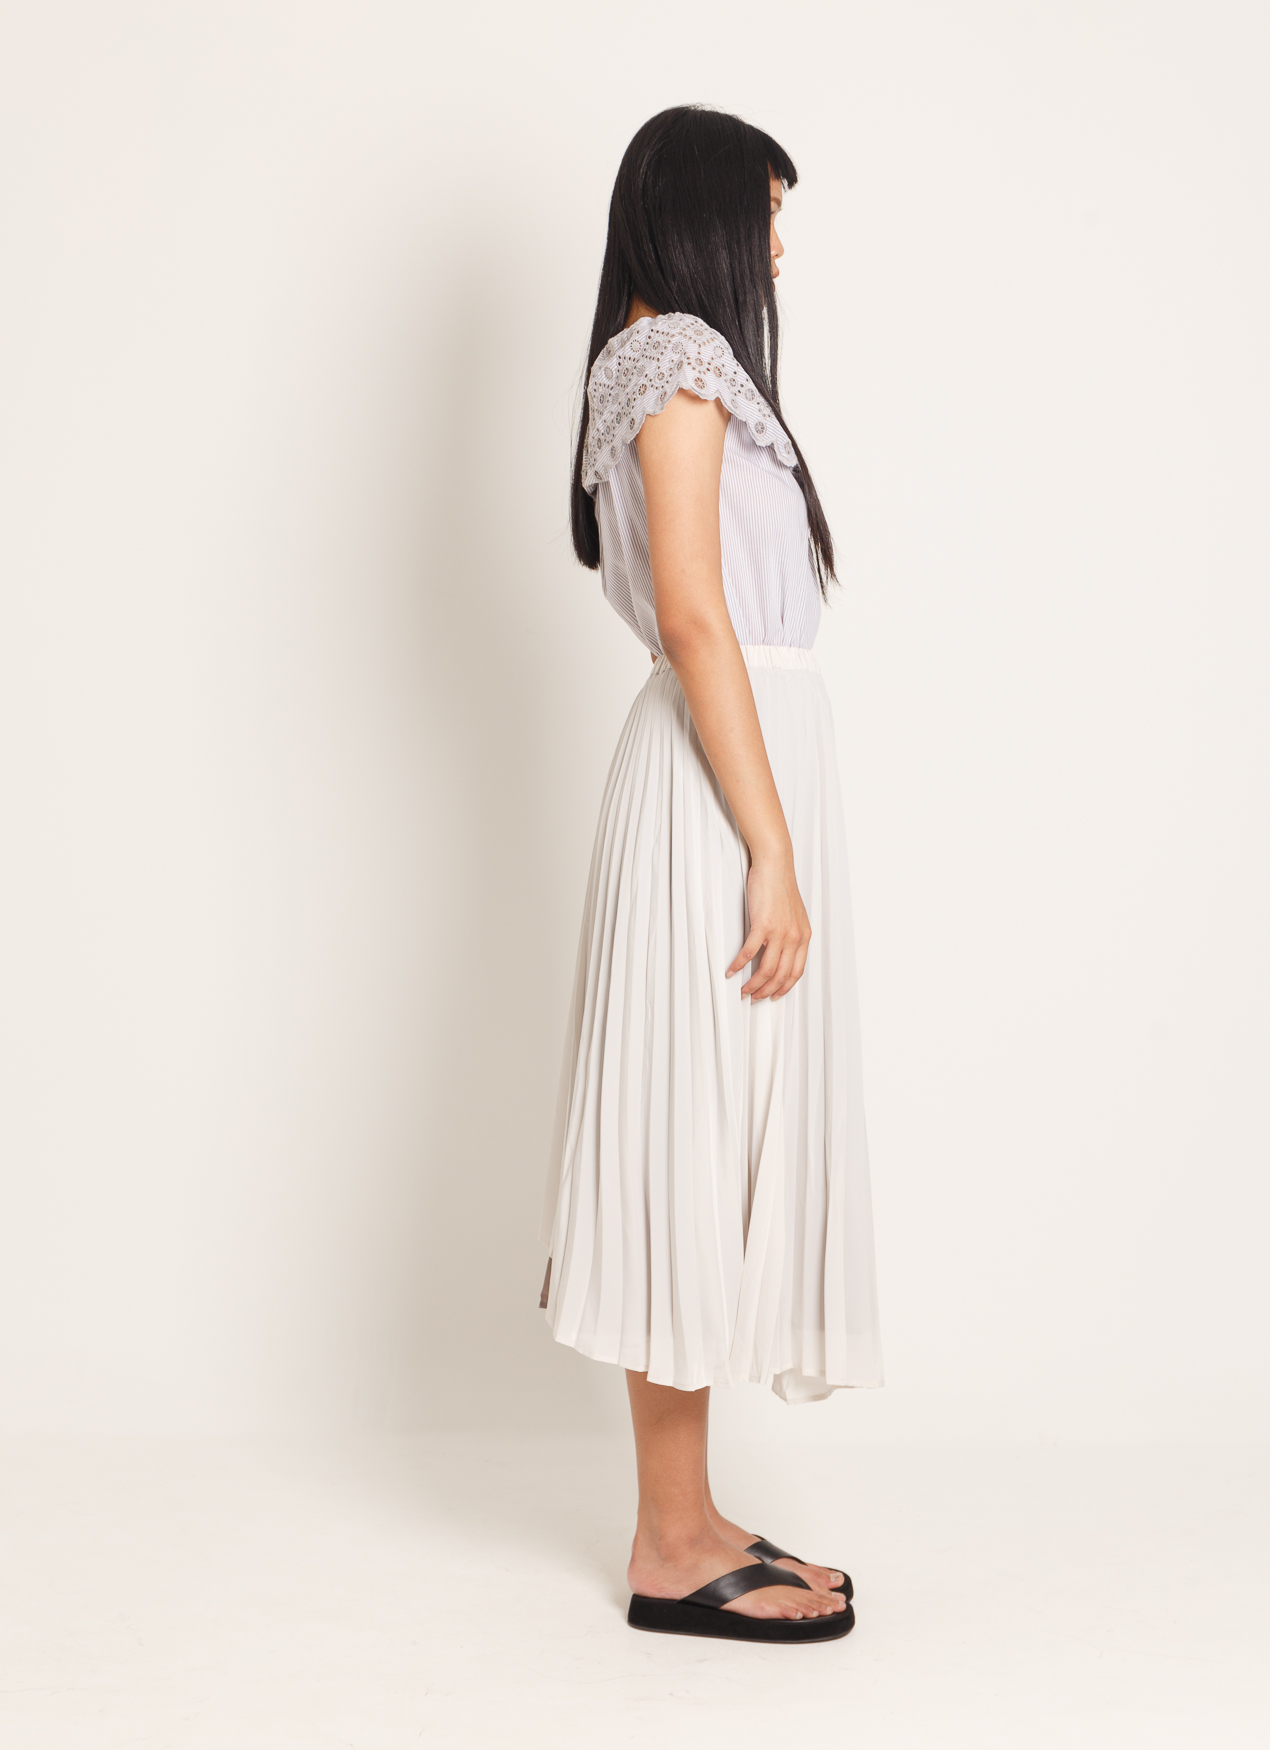 American Holic Mikki Pleated Skirt - Ivory